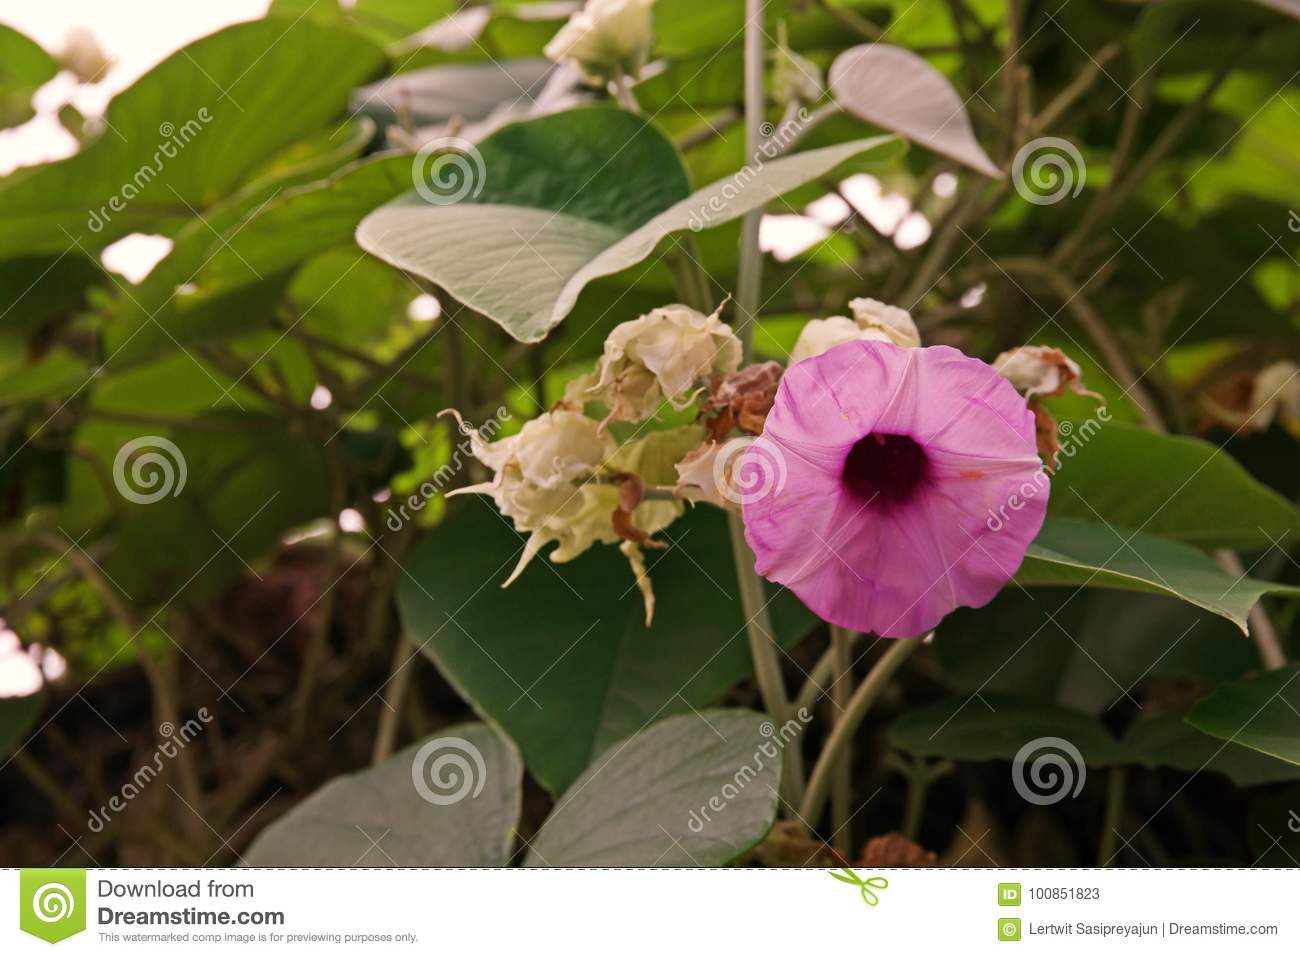 Elephant creeper perennial climbing vine stock image image of download elephant creeper perennial climbing vine stock image image of nervosa color mightylinksfo